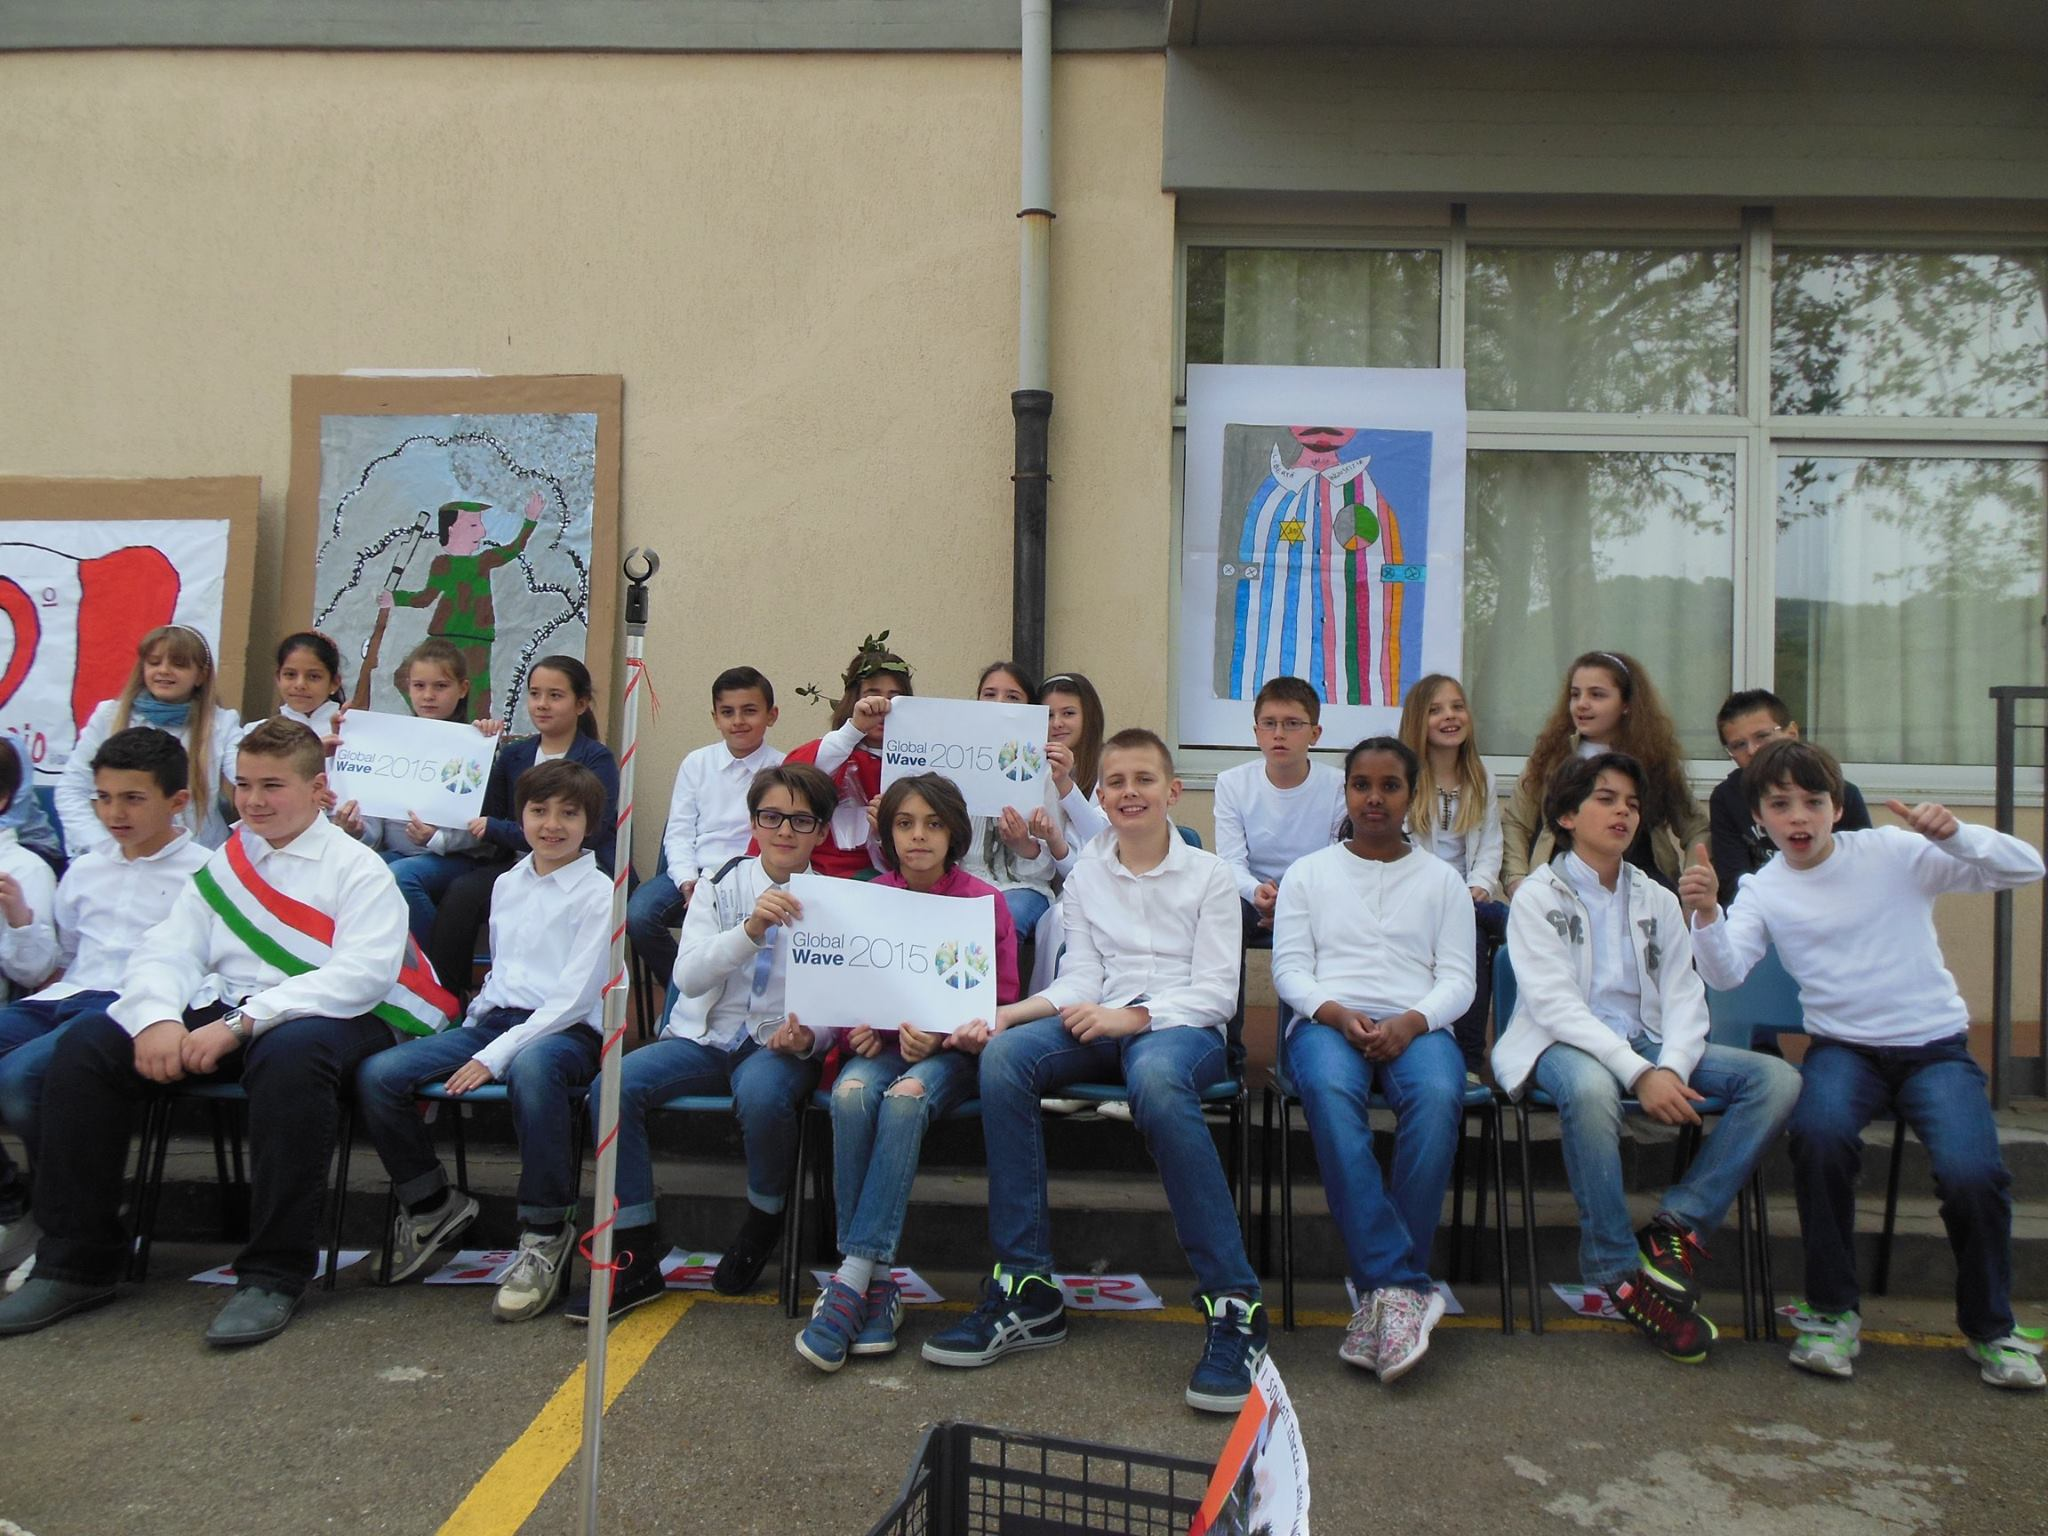 During the ceremonies for the 70th anniversary of Liberation Day, Italian Mayors and their communities took part in the Global Wave 2015 in the town of Bagno a Ripoli, near Florence. The two Mayors, senior and junior, are wearing the sash.